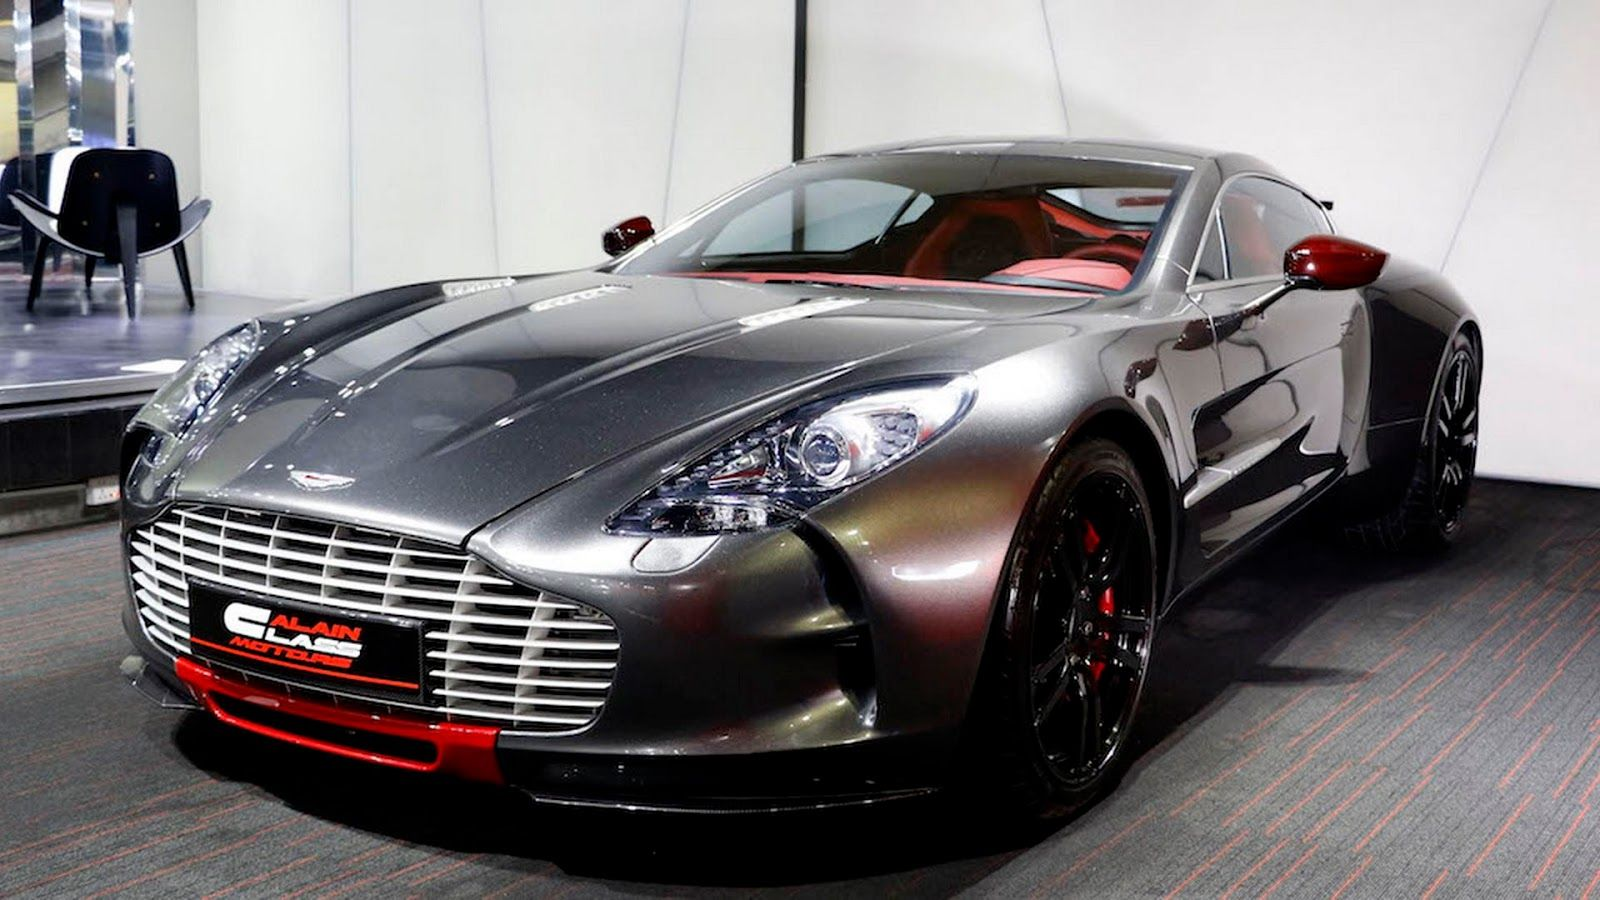 Ultra Rare Aston Martin One 77 Q Series For Sale In Dubai Carscoops Aston Martin Used Aston Martin Aston